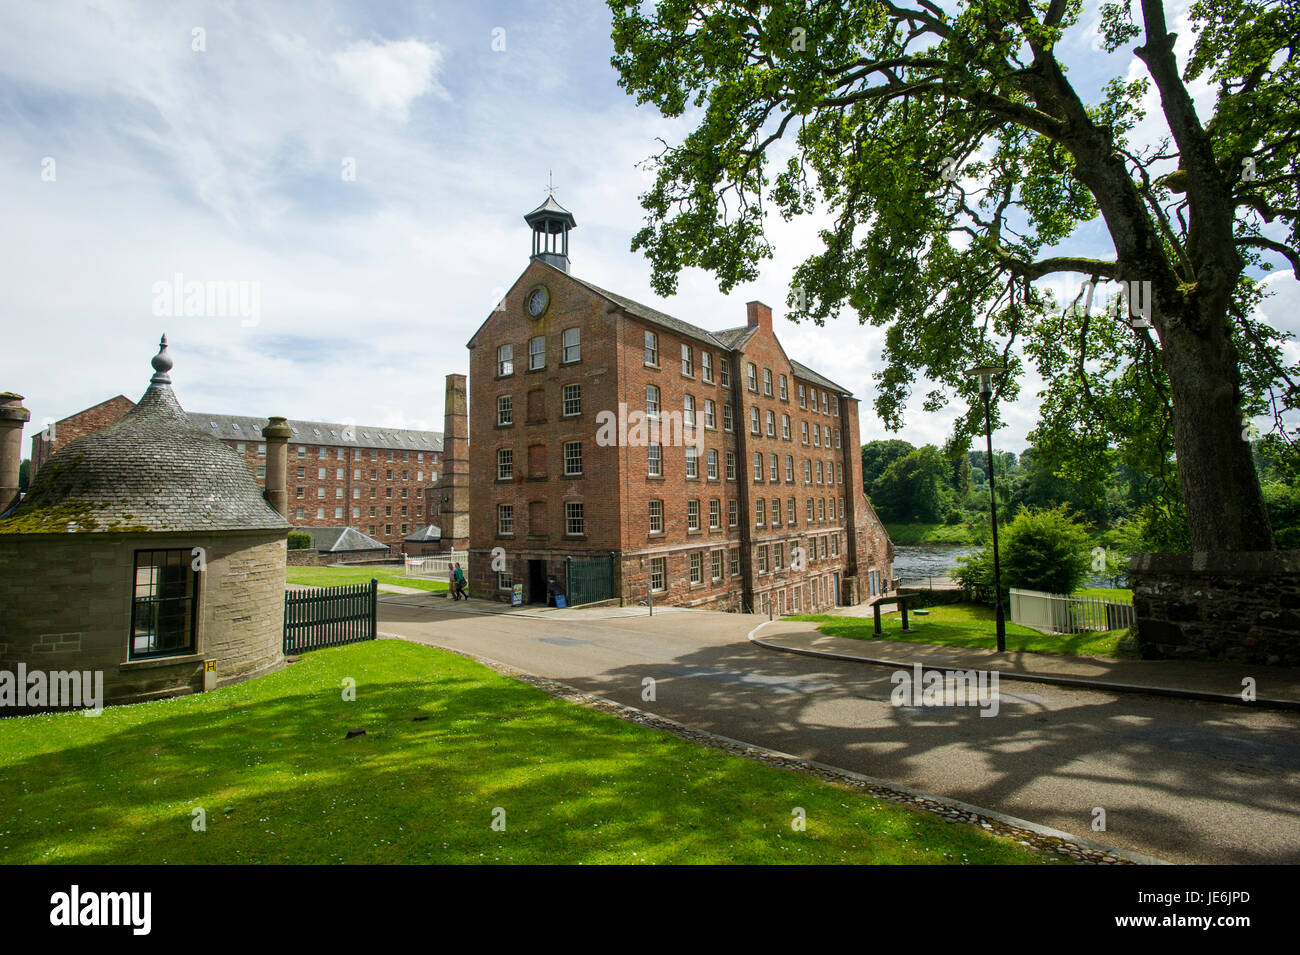 Stanley Mills, Perthshire, Scotland. Historic water powered cotton mill on the banks of the River Tay. - Stock Image